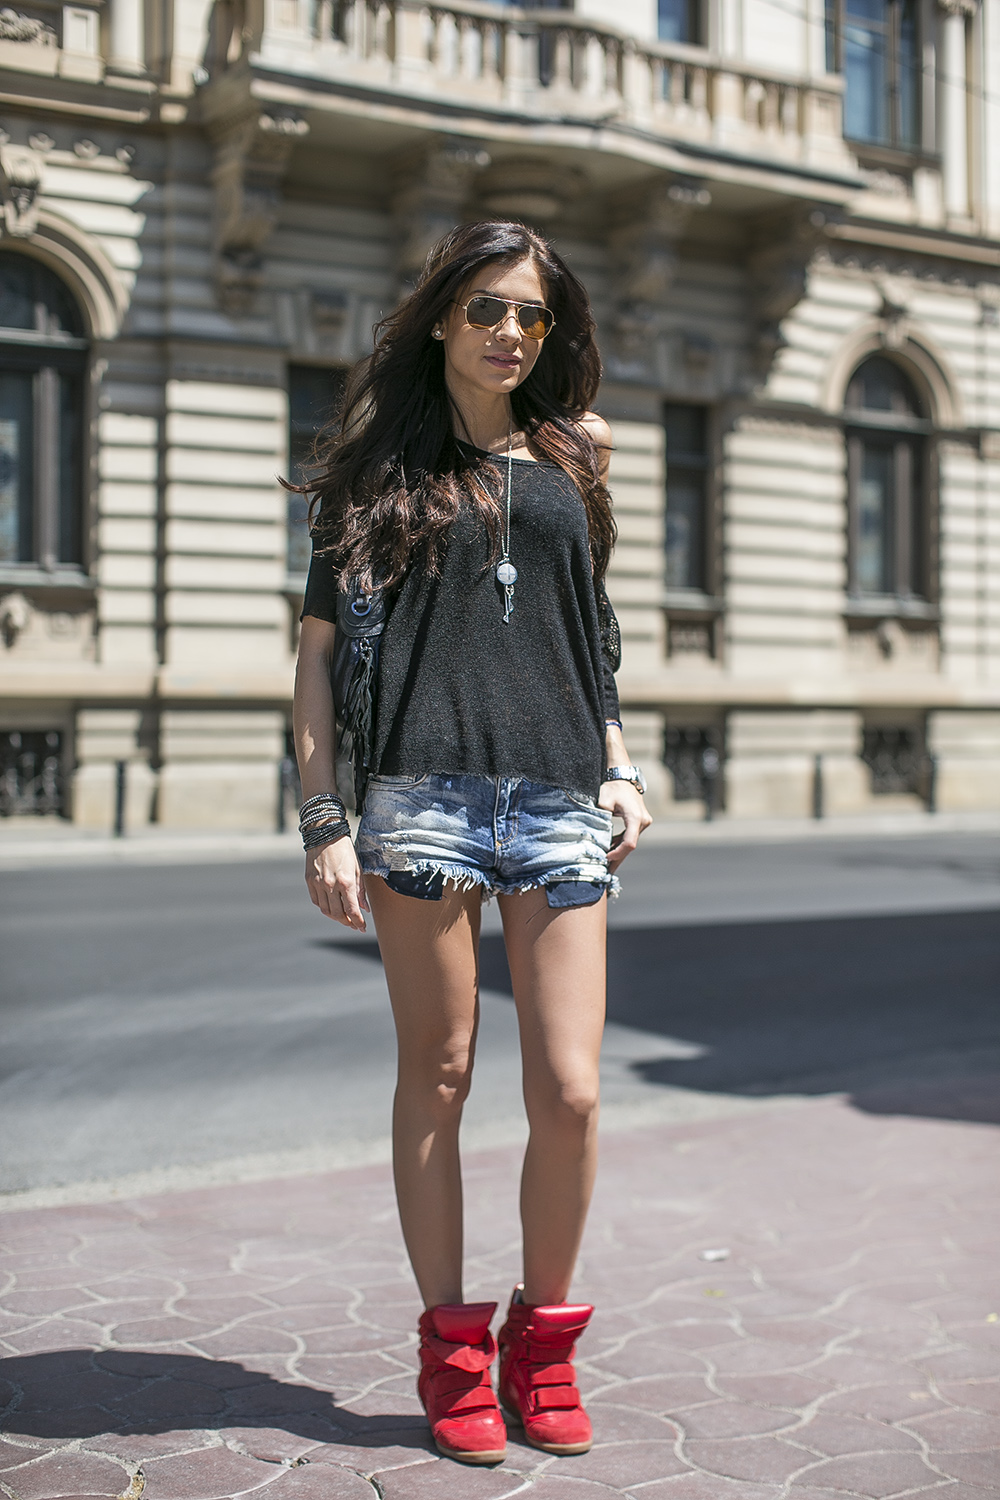 Summer Street Fashion Bucharest Lightaholic